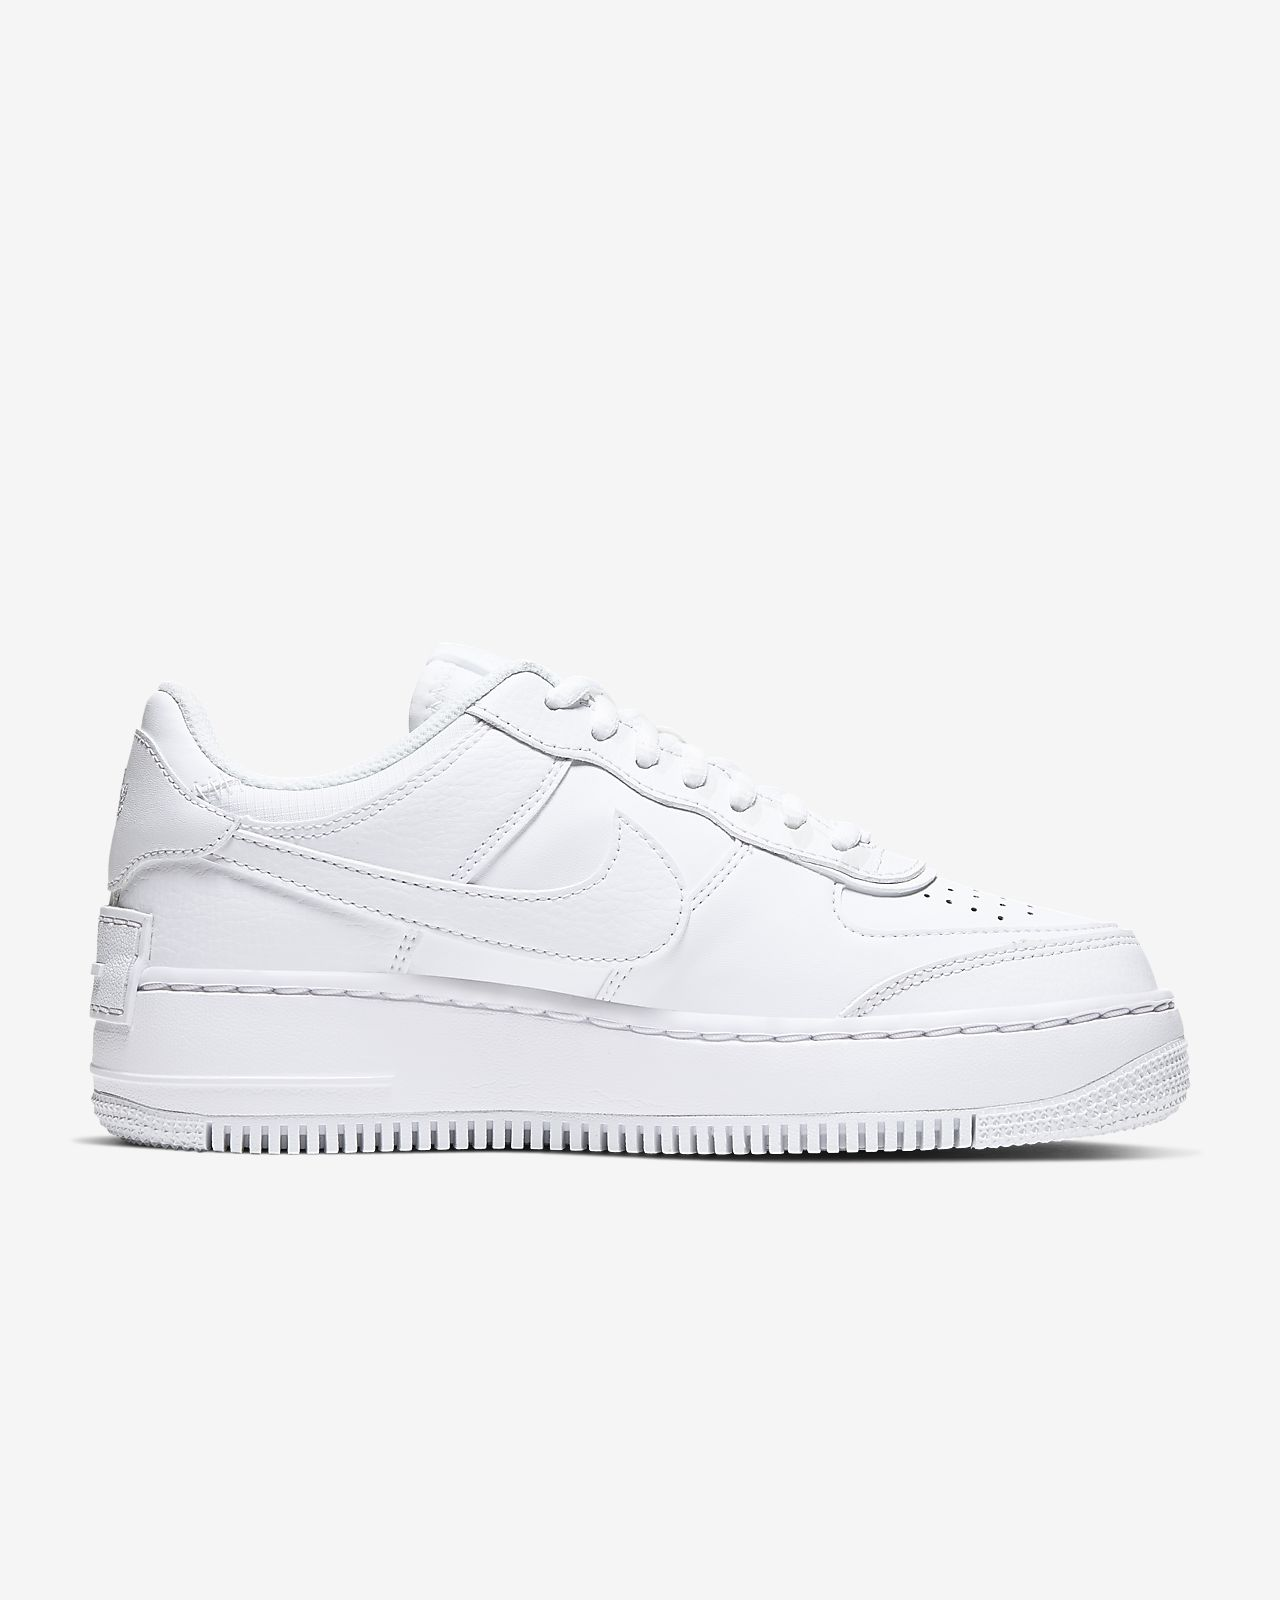 Nike Air Force 1 Low | Nike shoes outlet, Nike, Air force shoes